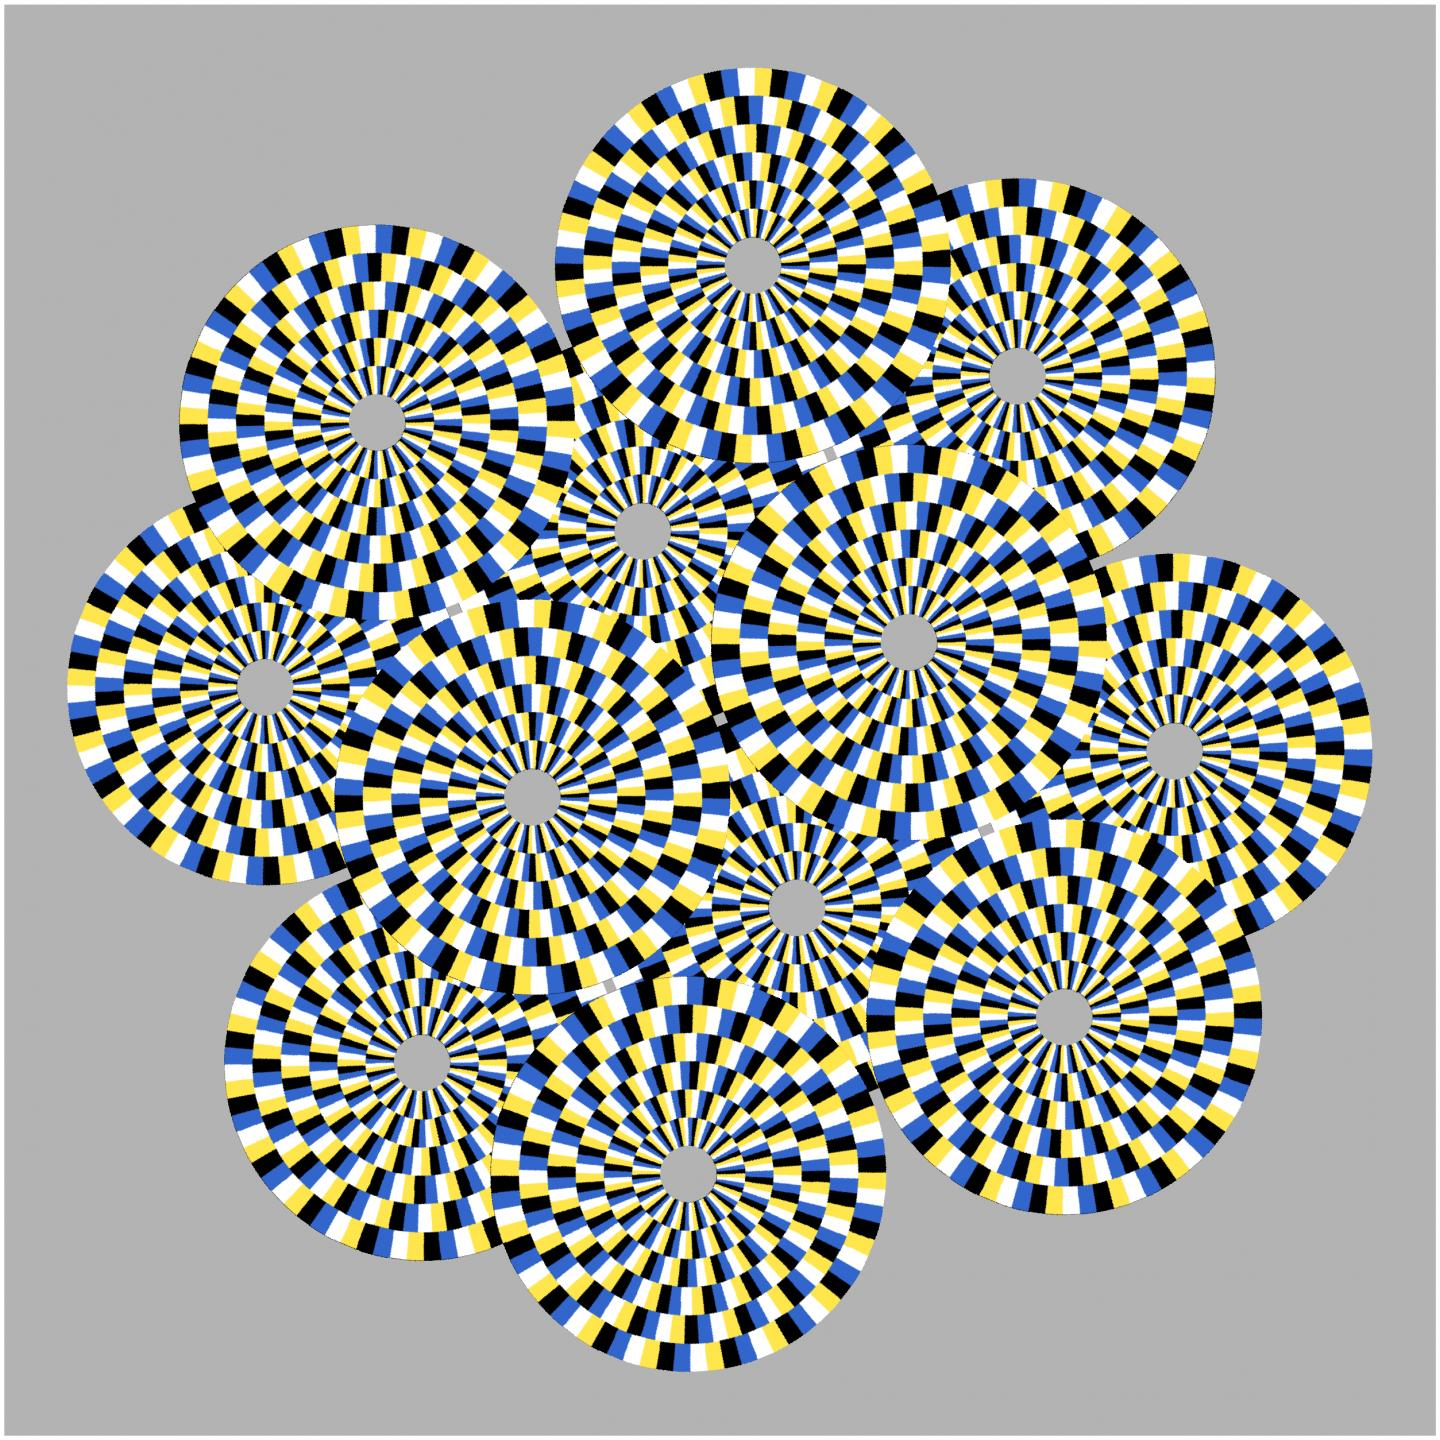 Circles Rotating in Different Directions